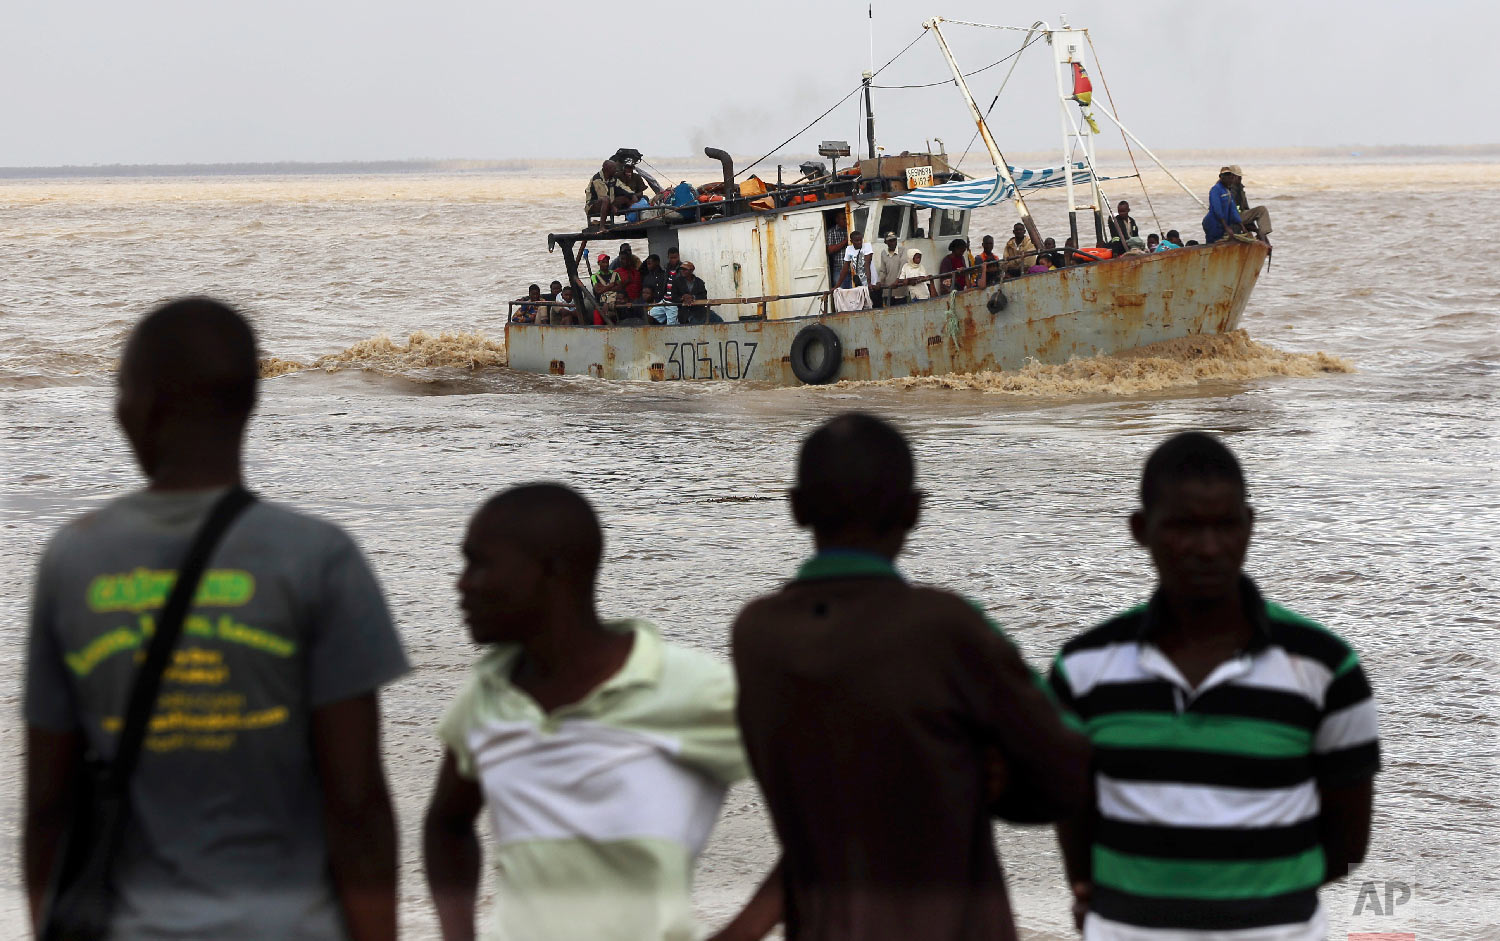 A group of men watch the arrival of a boat carrying displaced families rescued from a flooded area of Buzi district, 200 kilometers (120 miles) outside Beira, Mozambique, on Saturday, March 23, 2019. (AP Photo/Themba Hadebe)